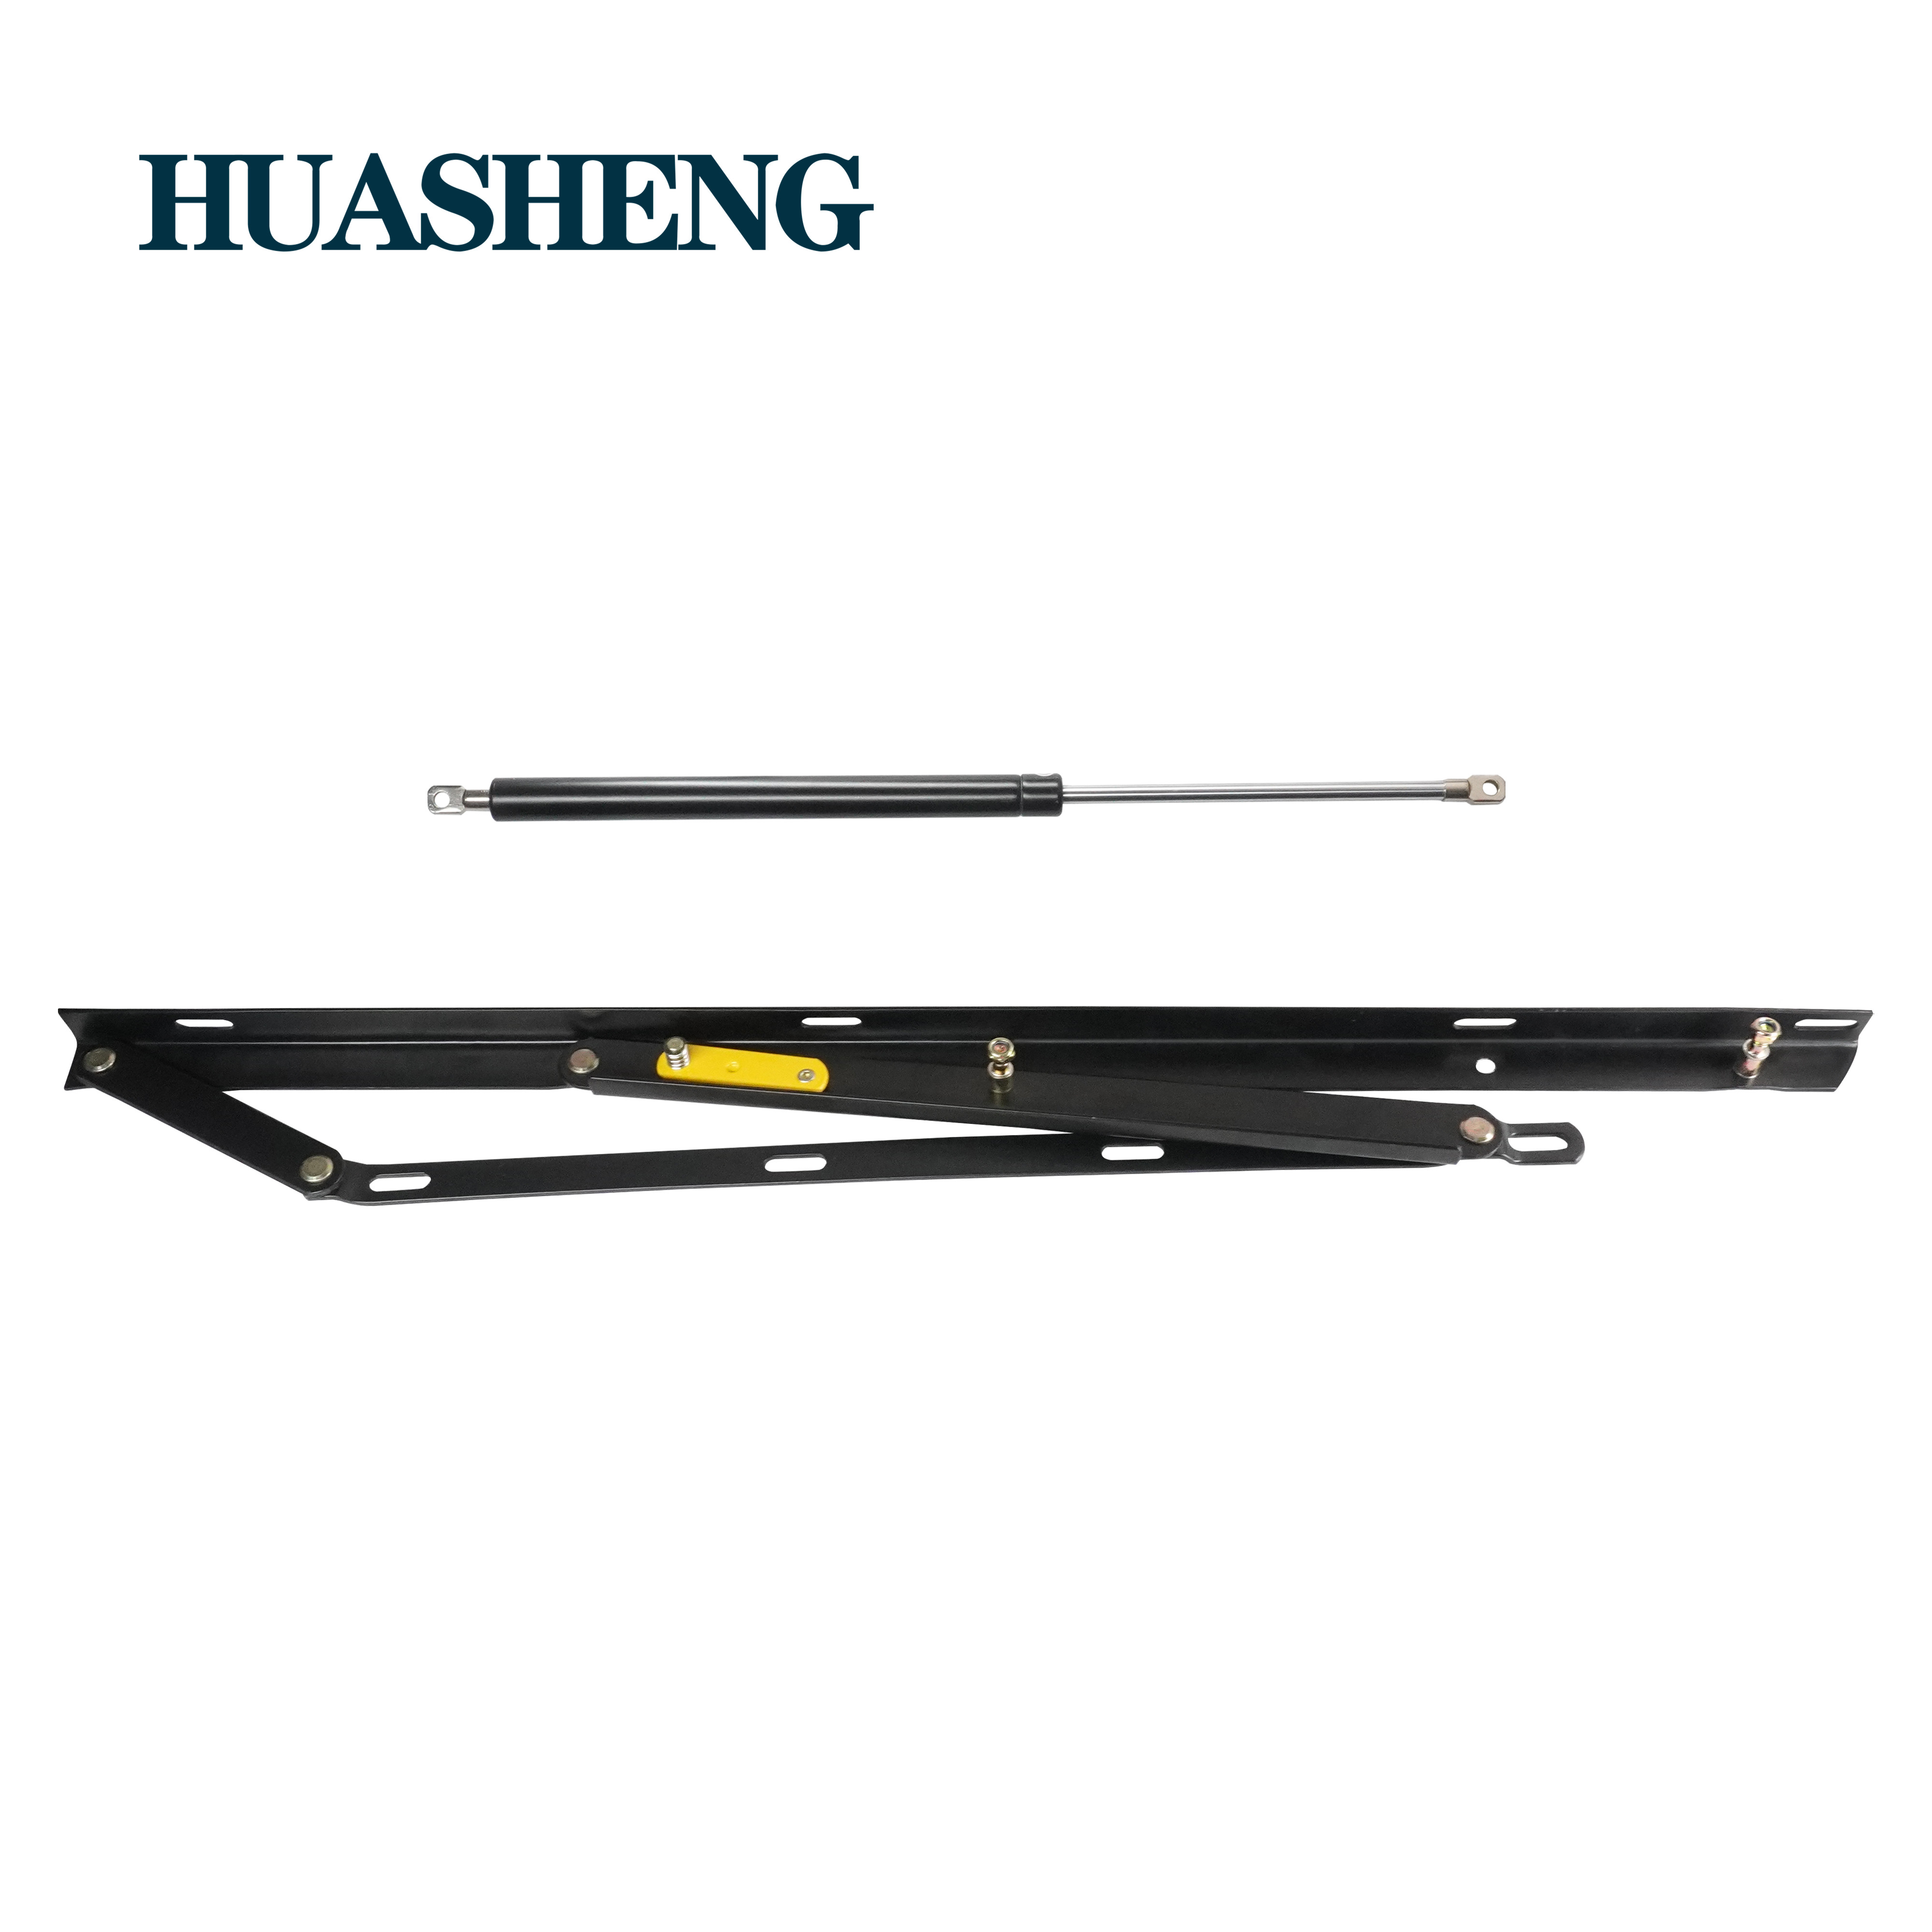 Heavy duty bed lifting system bed fitting Lift up gas spring strut hinges mechanism for furniture